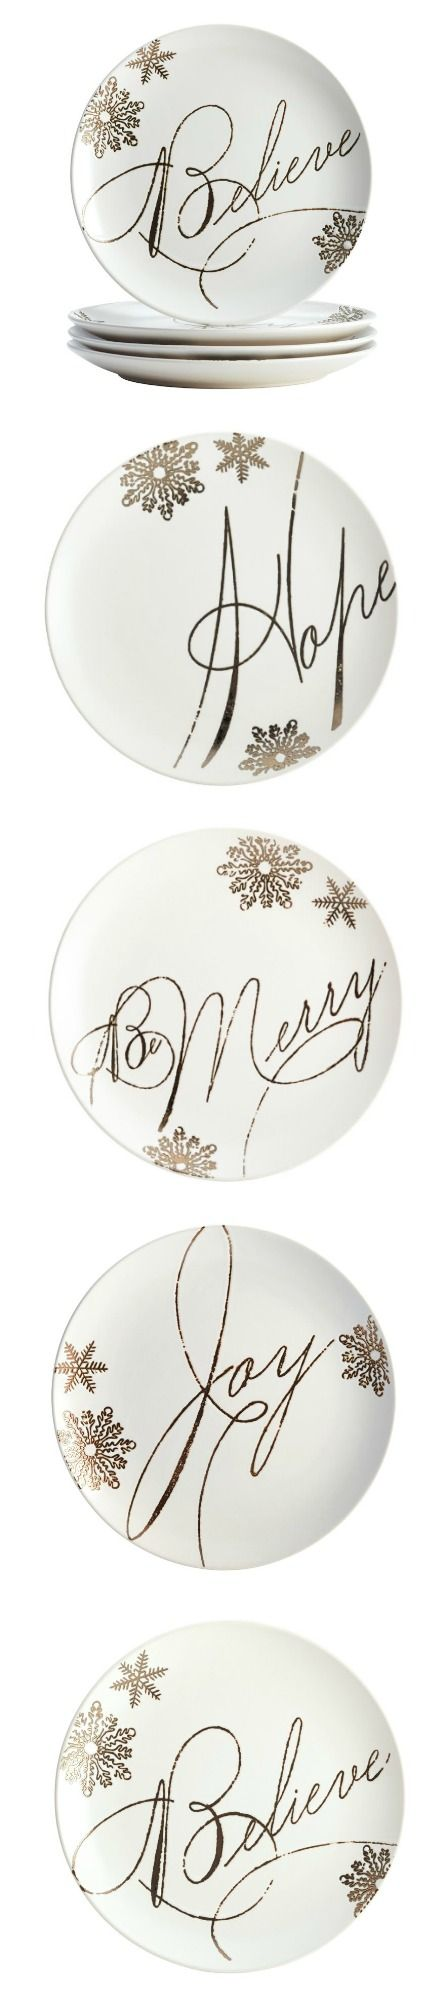 Paula Deen 4 Piece Holiday Dessert Plate Set - dinnerware | holiday note and winter color. Tableware sturdy stoneware construction, classic lines, and a ceramic glaze. motif of silver gold snowflakes and a seasonal message in script. Stylish, versatile enough for a special occasion or an informal gathering. perfect for both tabletop and buffet. Microwave / freezer safe. perfect size for salads, desserts, and appetizers. Stoneware can be warmed at 250°F for up to 20 min. dishwasher safe. #ad